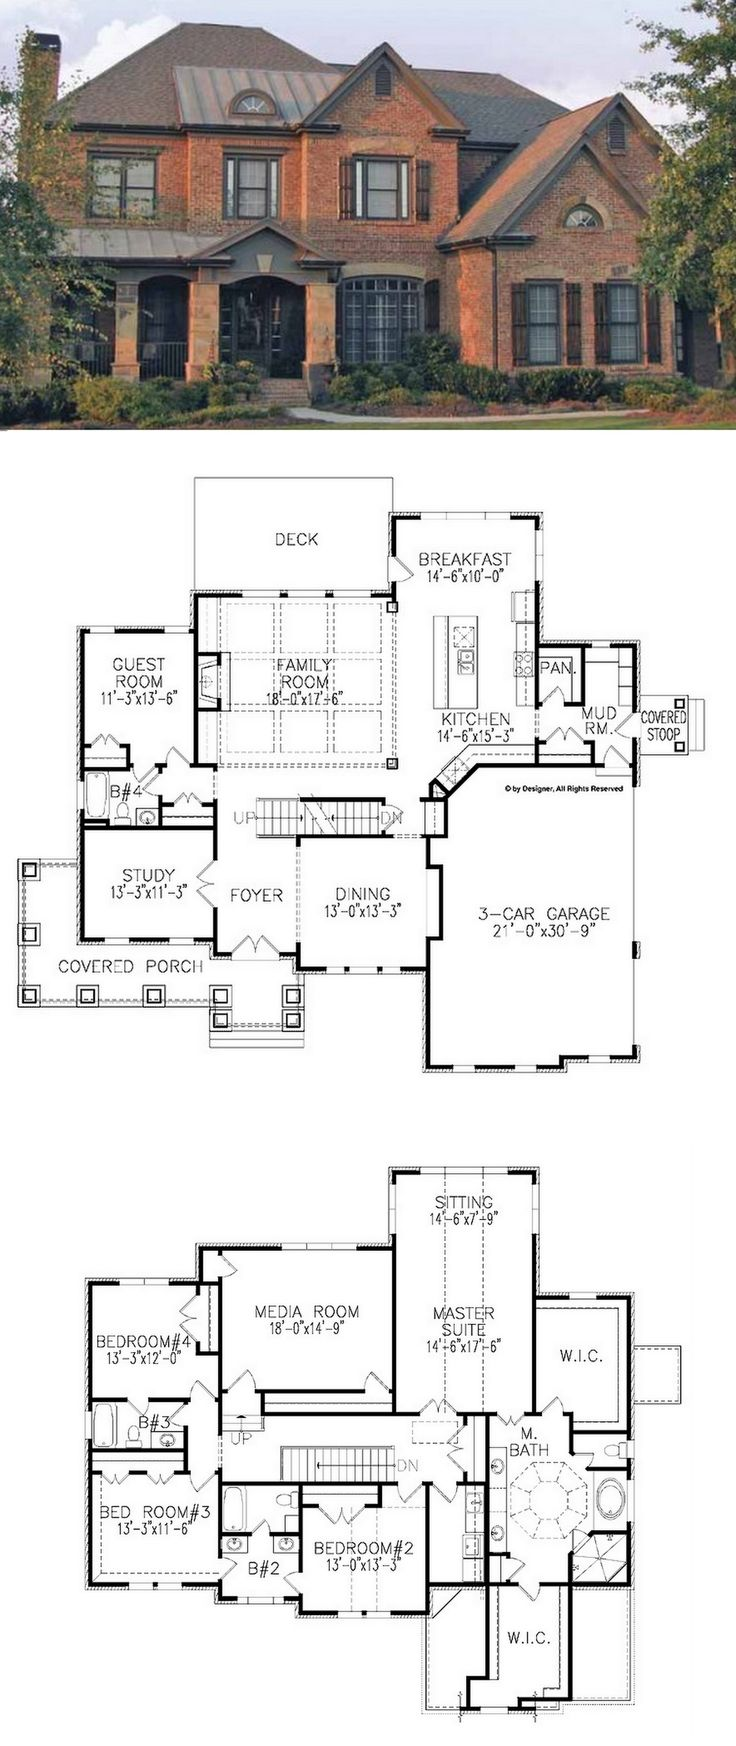 House Floor Plans 5 Bedroom best 25+ house floor plans ideas on pinterest | house blueprints